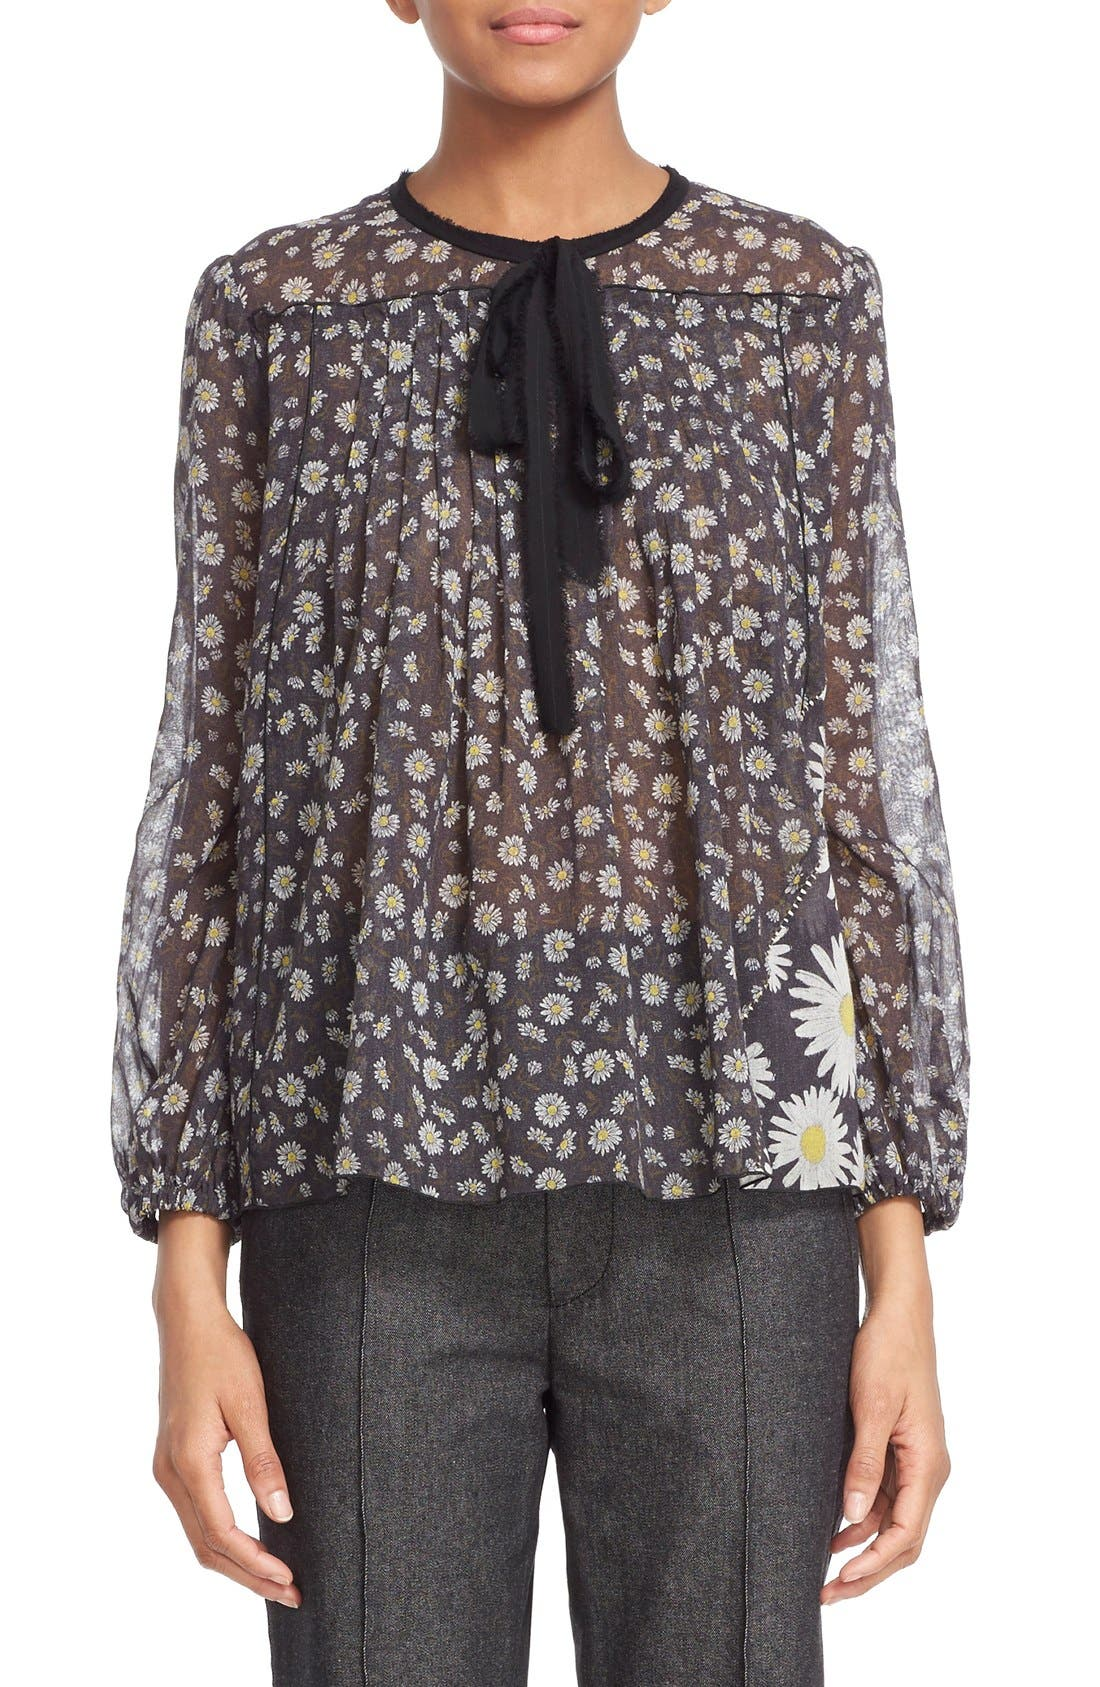 Alternate Image 1 Selected - MARC JACOBS Daisy Print Sheer Tie Neck Peasant Blouse